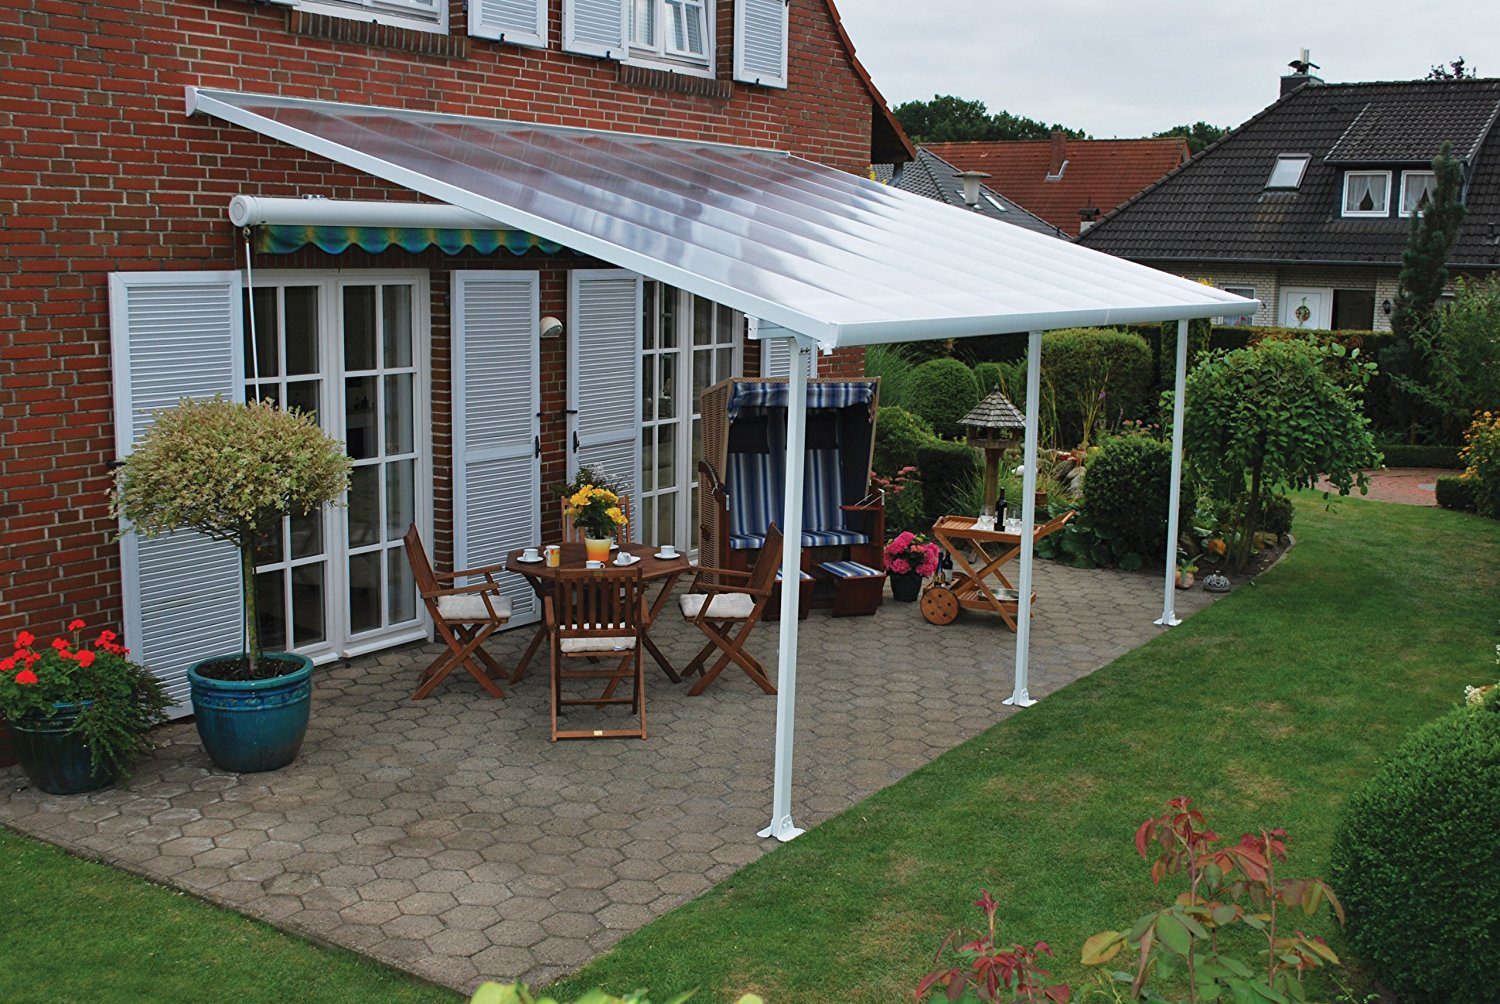 patio covers amazon.com : palram feria patio cover 13 x 20 white : greenhouse parts ZIPHUMP